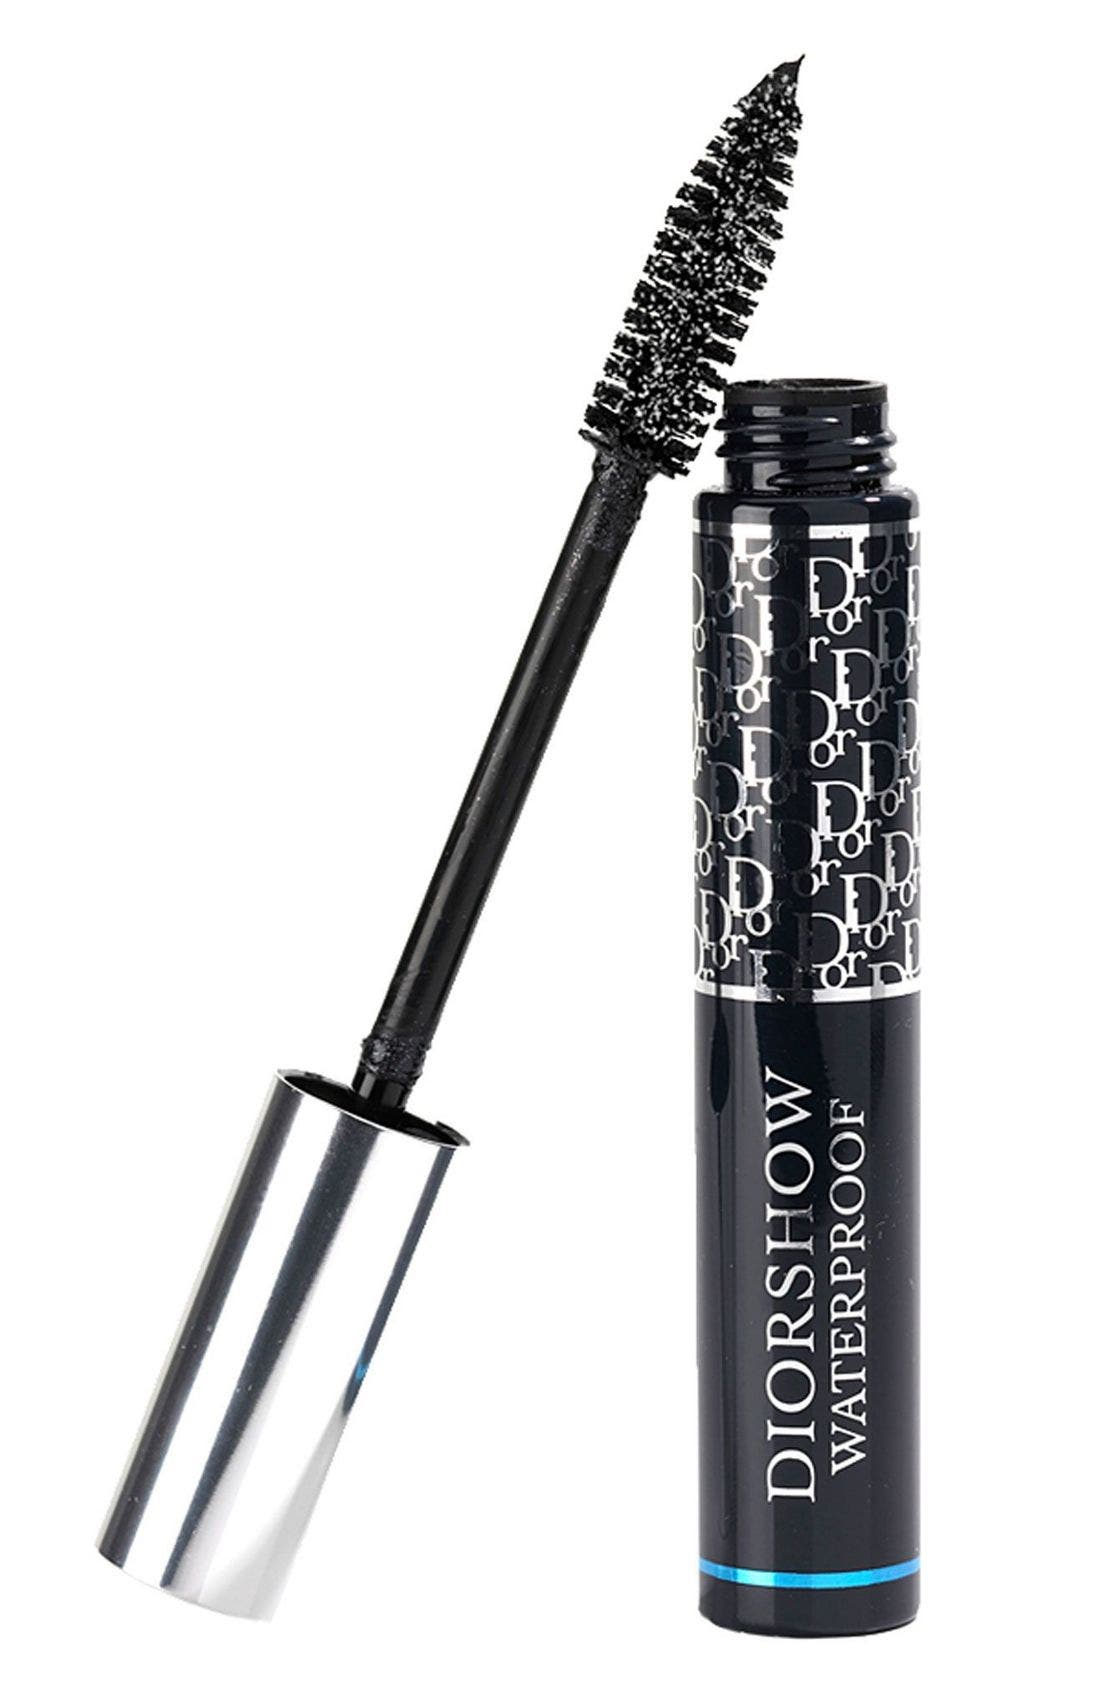 Dior 'Diorshow' Waterproof Mascara